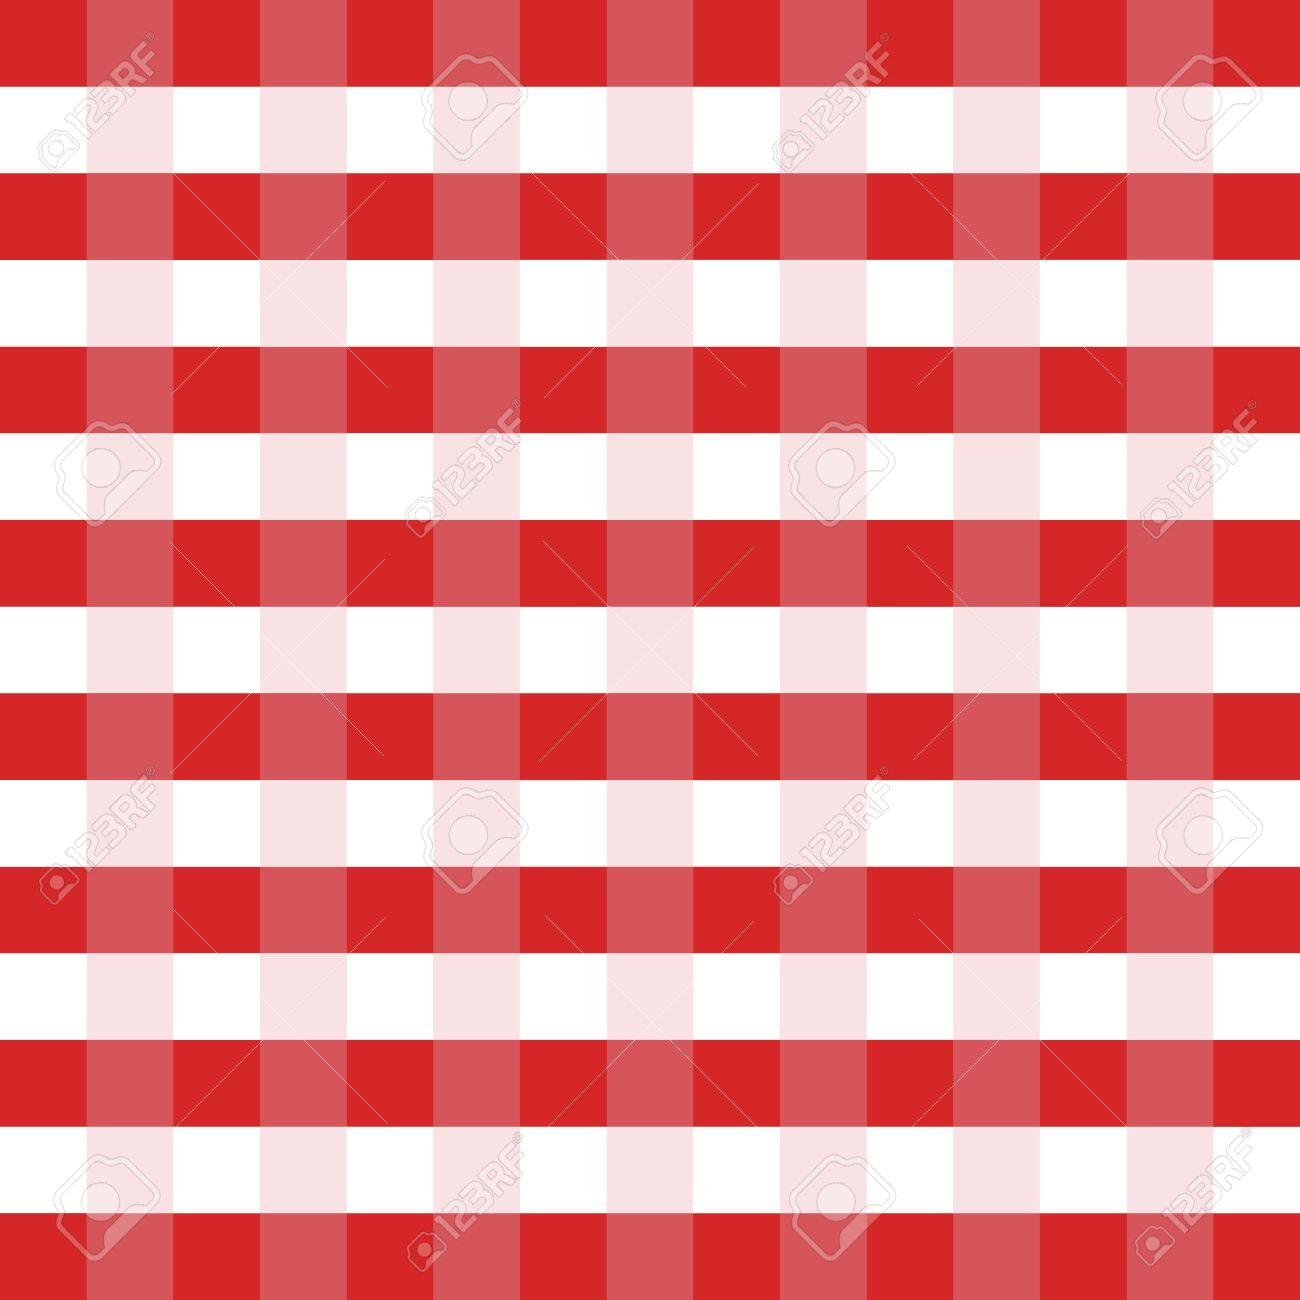 Checkered Tablecloth Red And White Vector Illustration. Picnic Table Cloth  Stock Vector   44023974